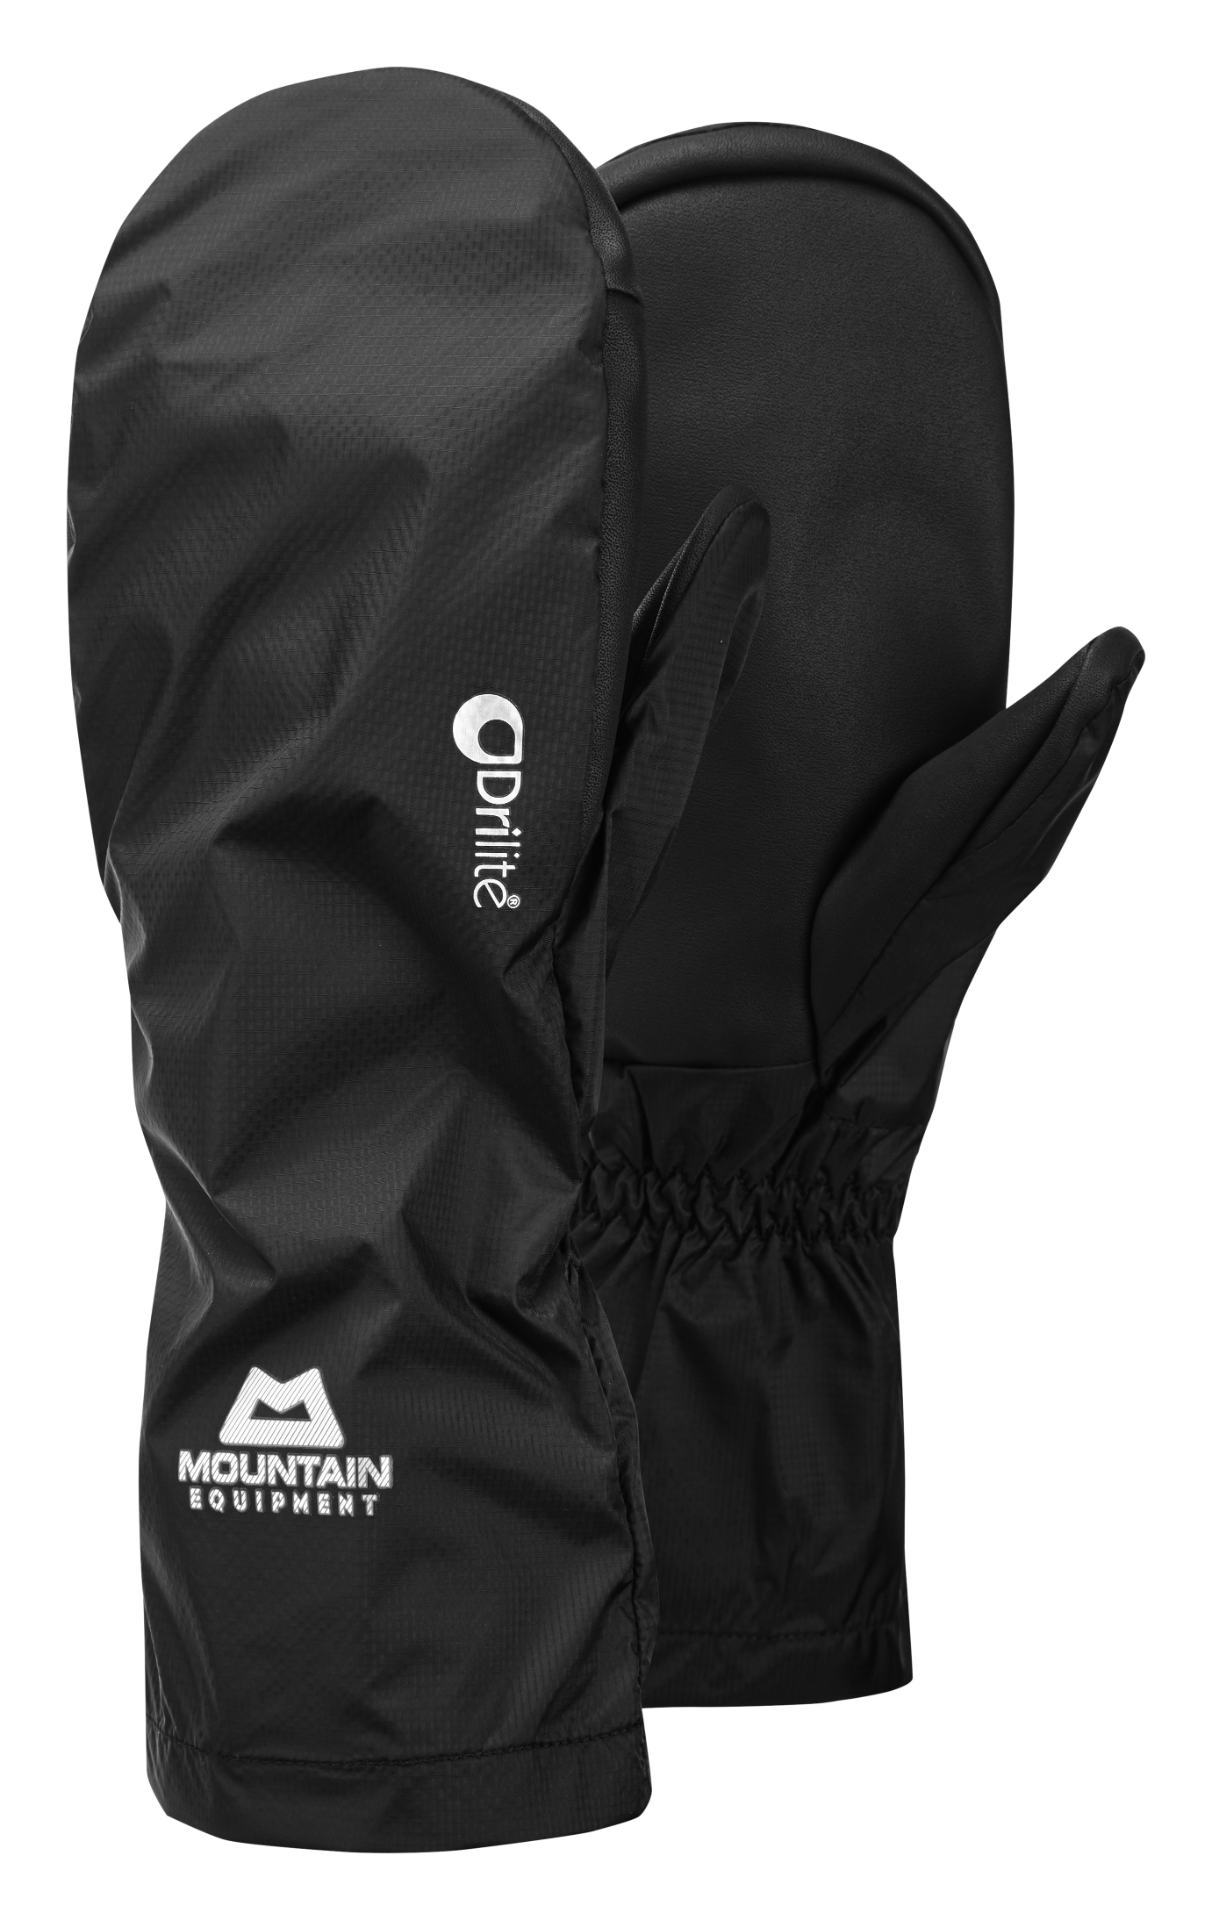 Rukavice Mountain Equipment Drilite Overmitt  Black XL